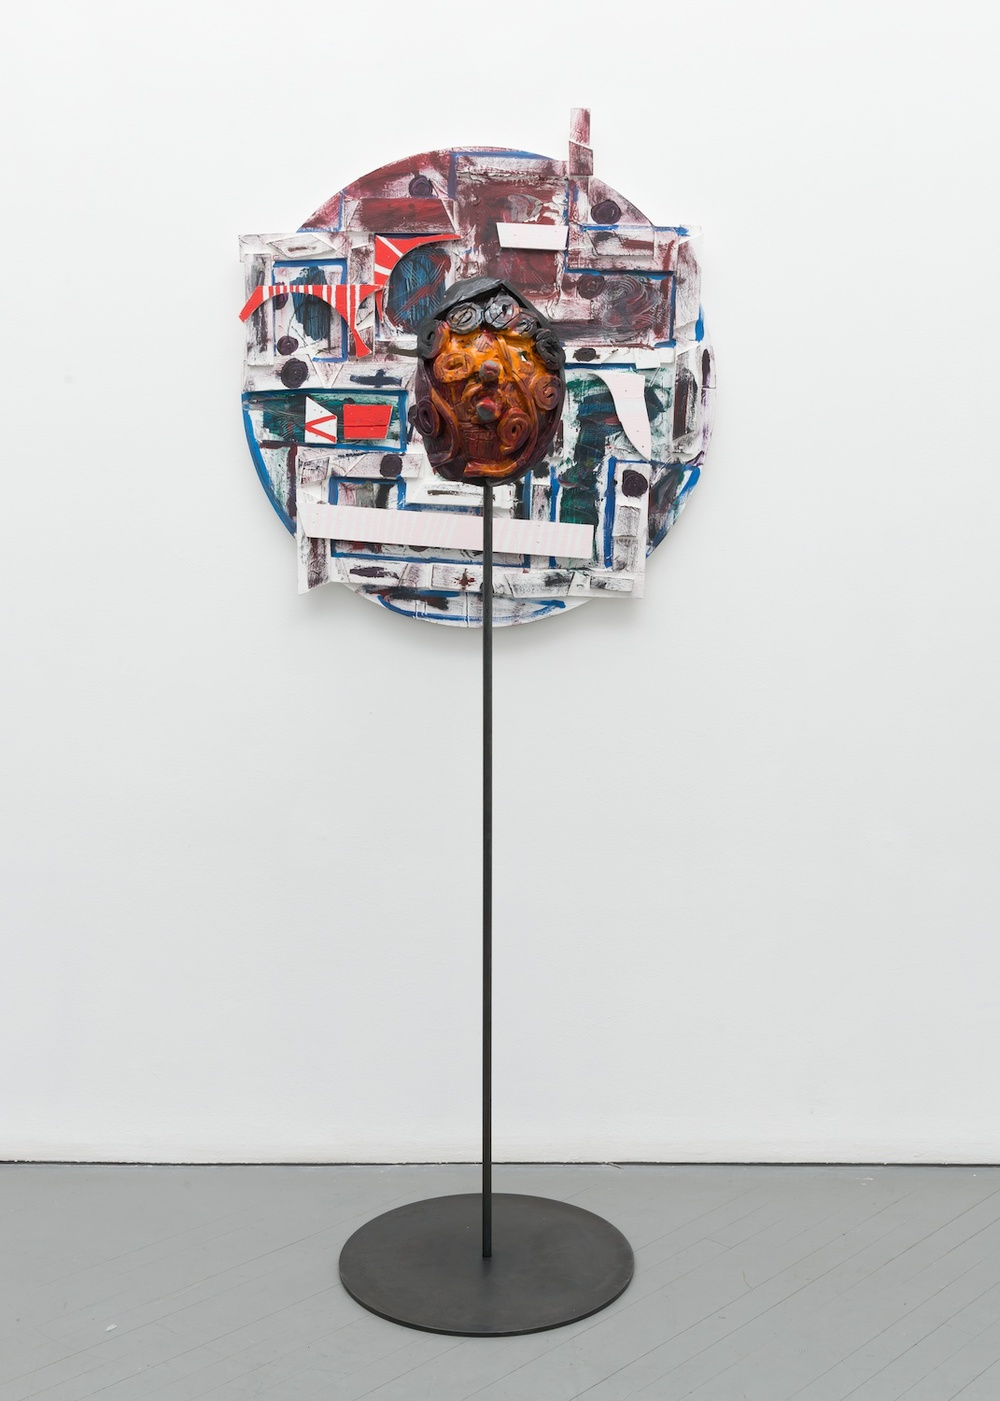 William J. O'Brien  Untitled  2013/2014 Mixed media on wood; Glazed ceramic on steel armature 35h x 39w (painting); 66 ½h x 20w x 20d in (ceramic + stand) WOB907/WOB934